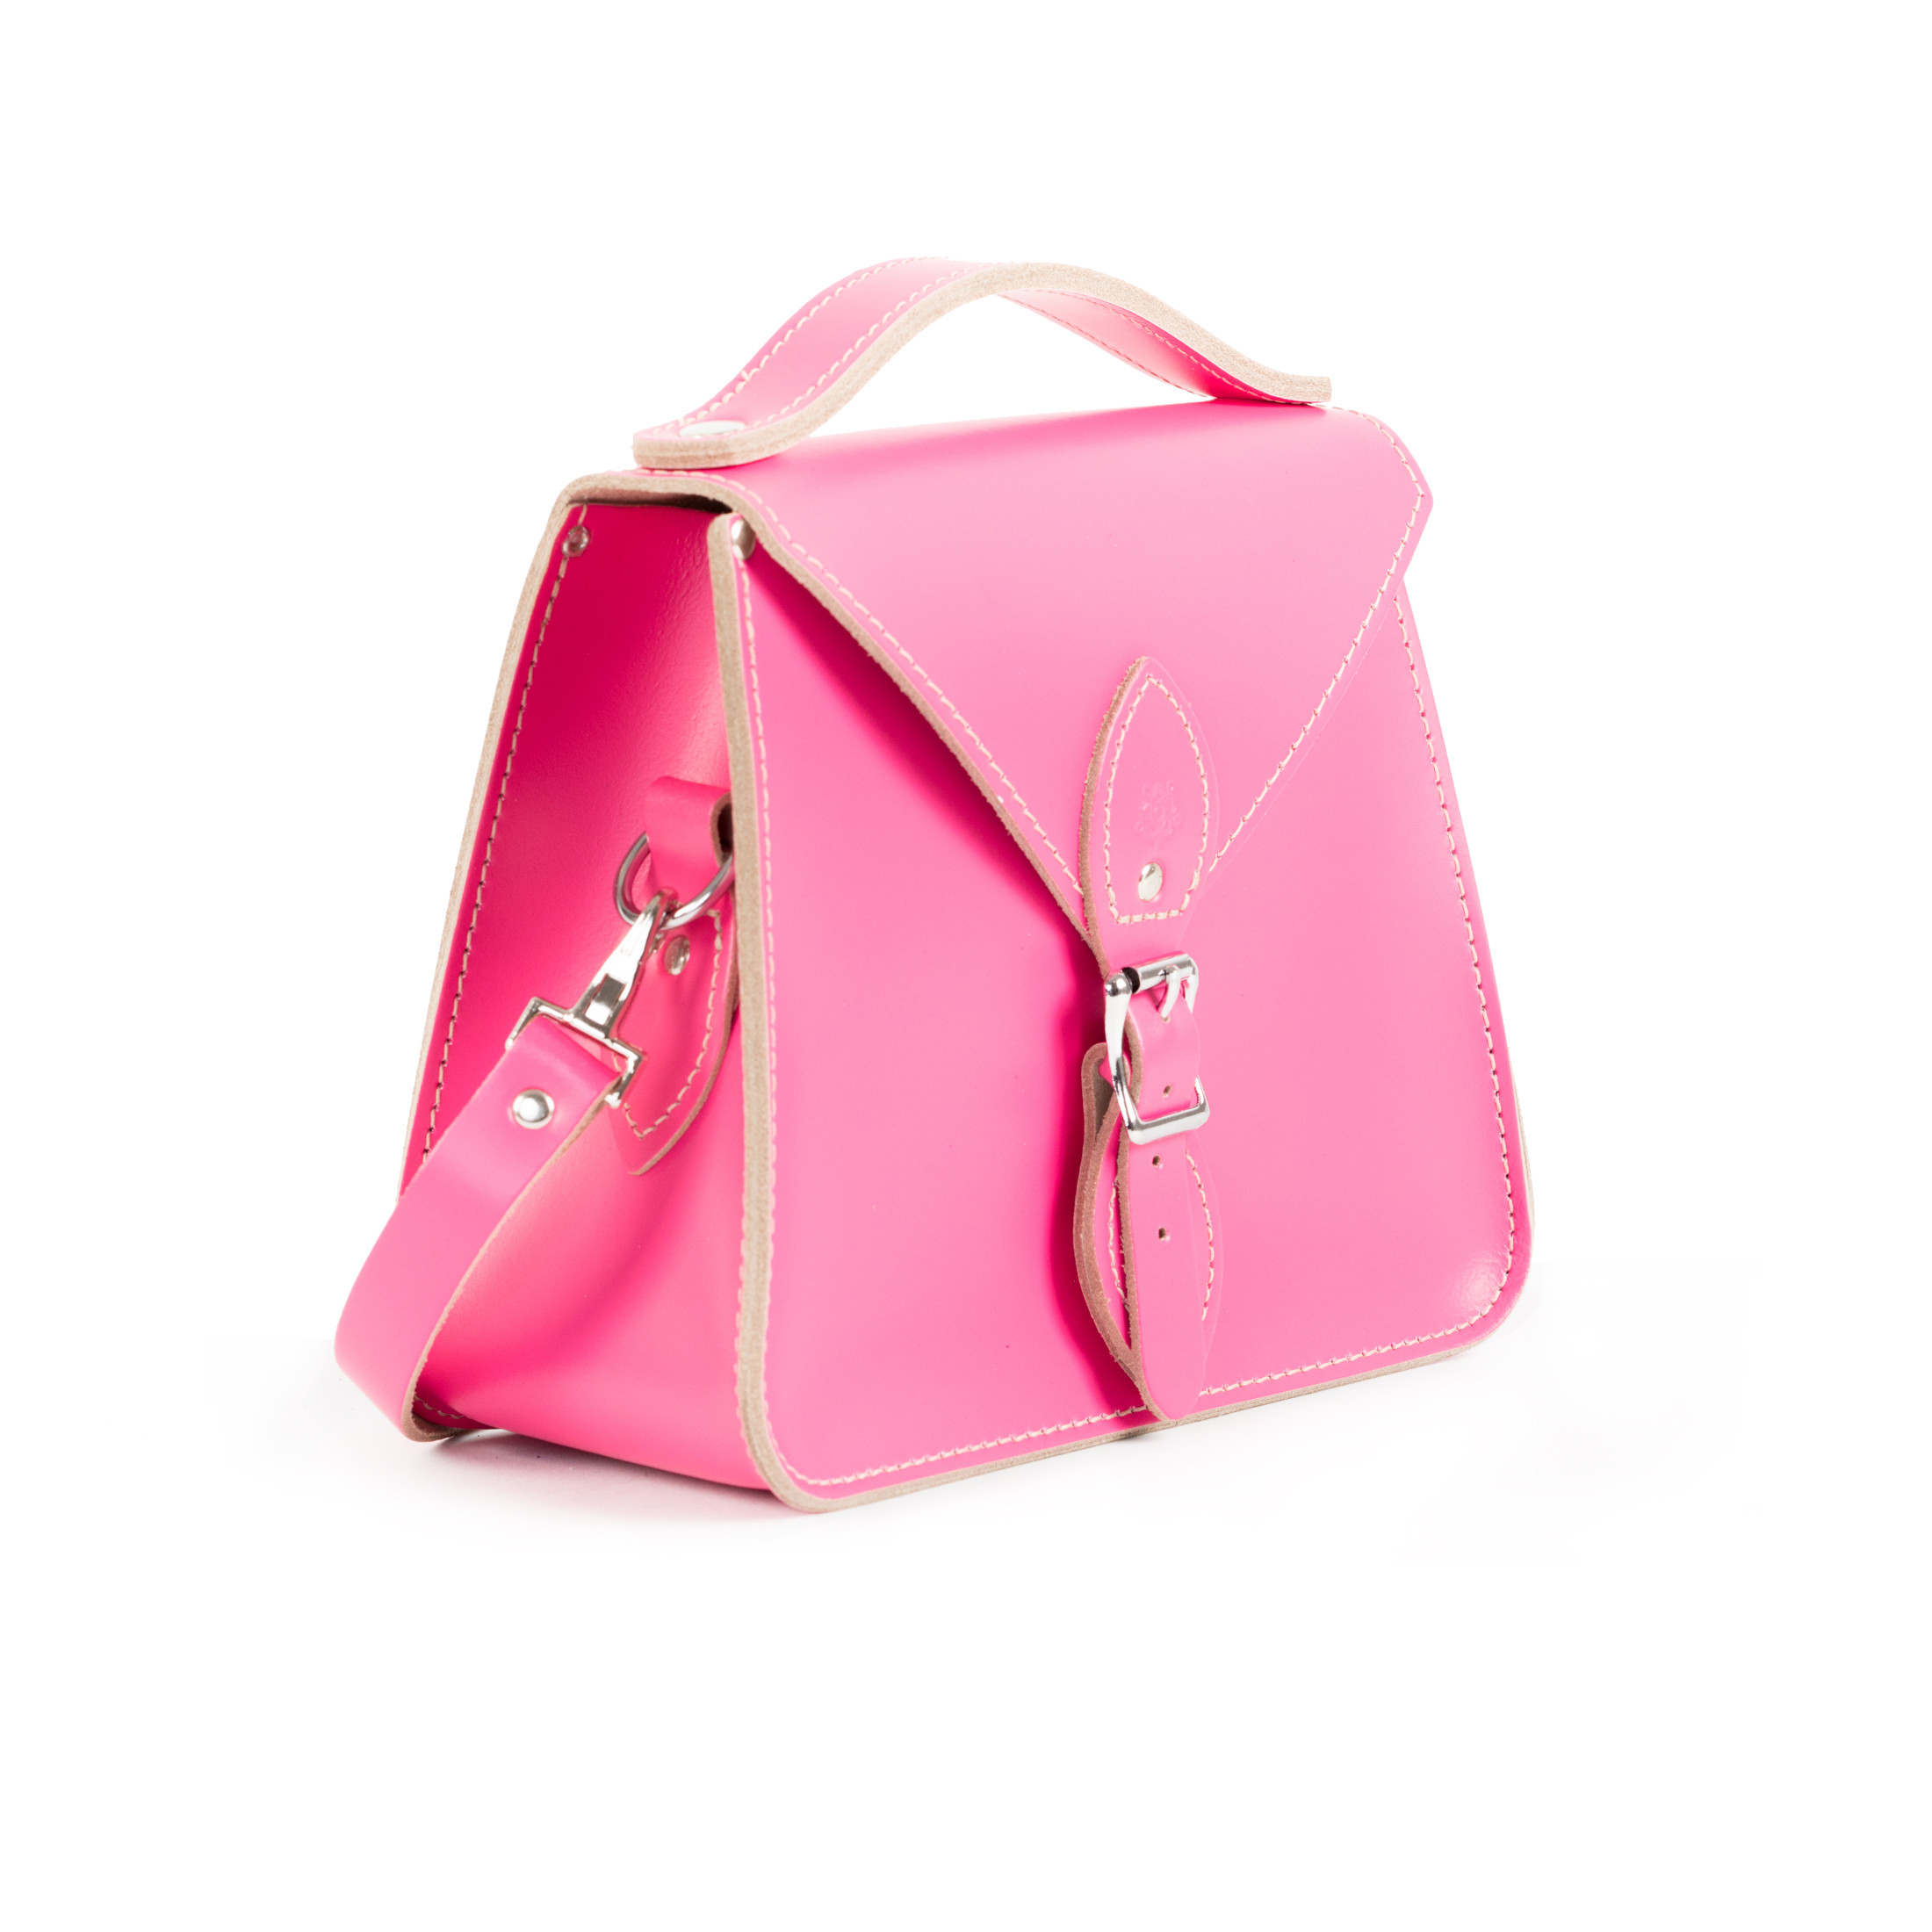 Esme Premium Leather Crossbody Bag in Bright Pink